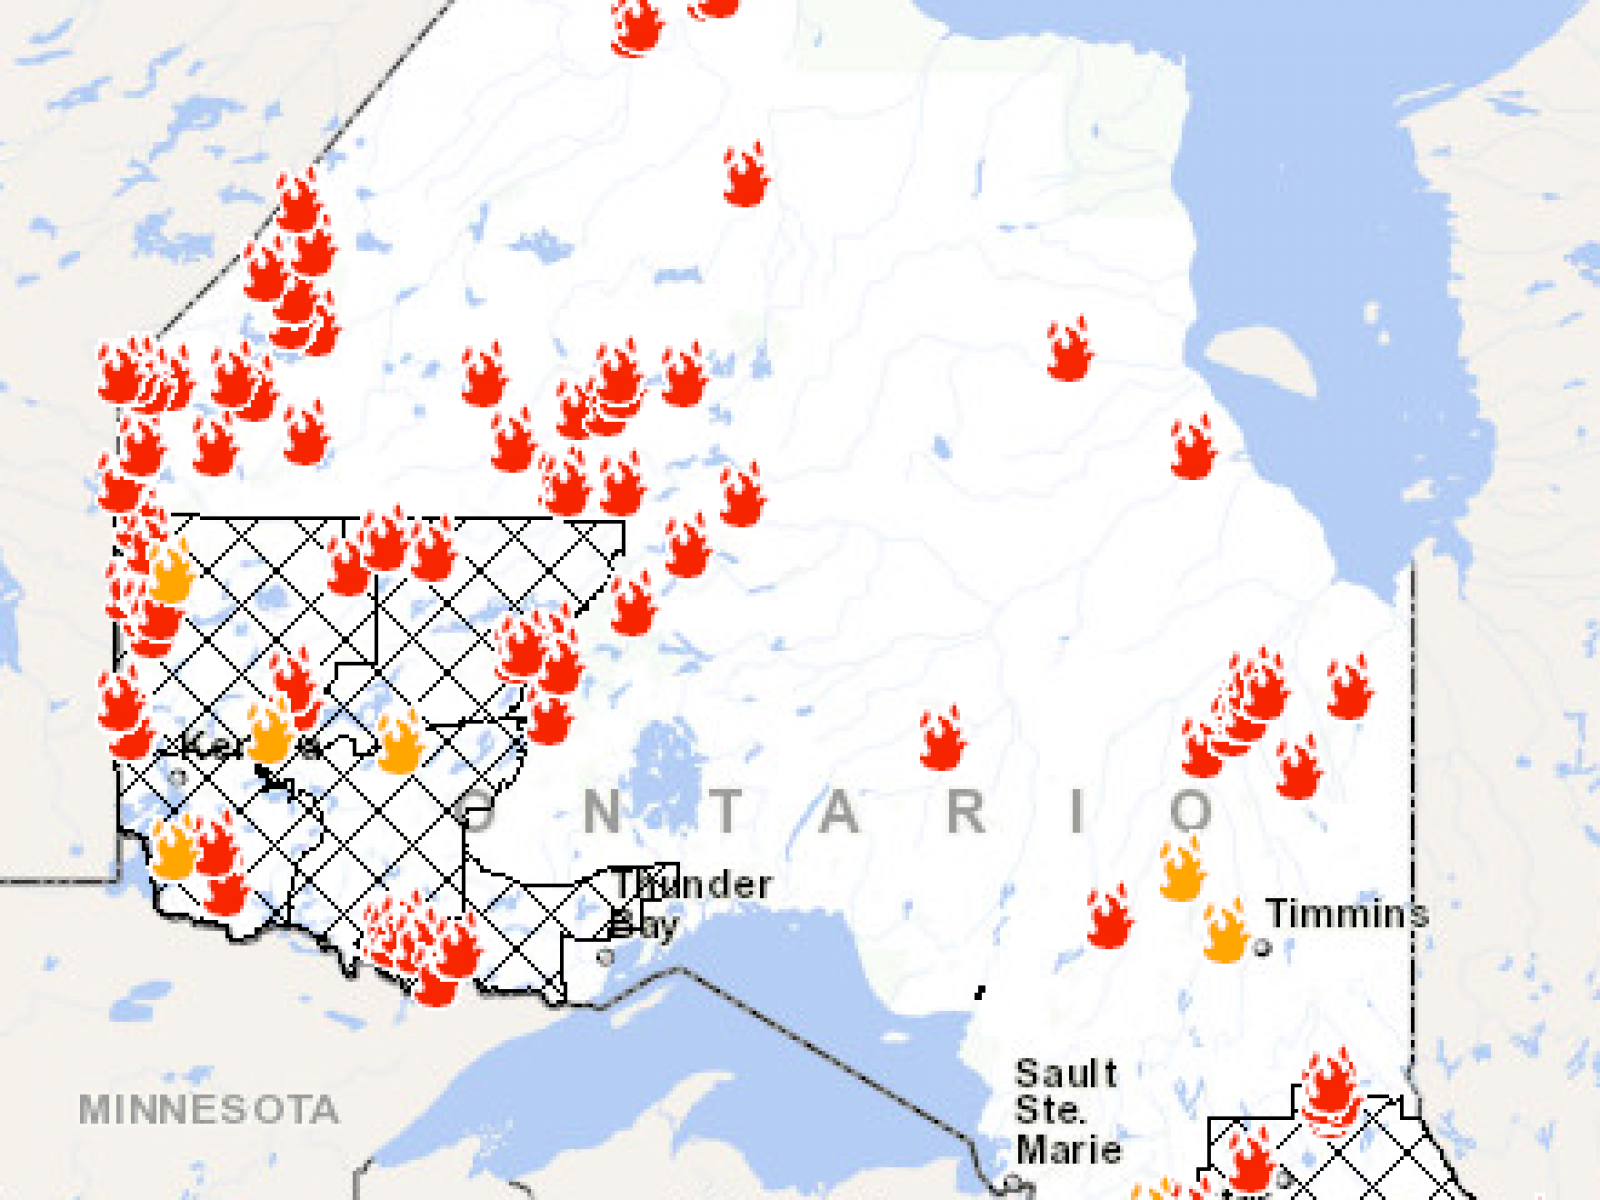 Map Of Forest Ontario Canada Ontario Fire Map: Here's Where Canada Wildfires Are Burning